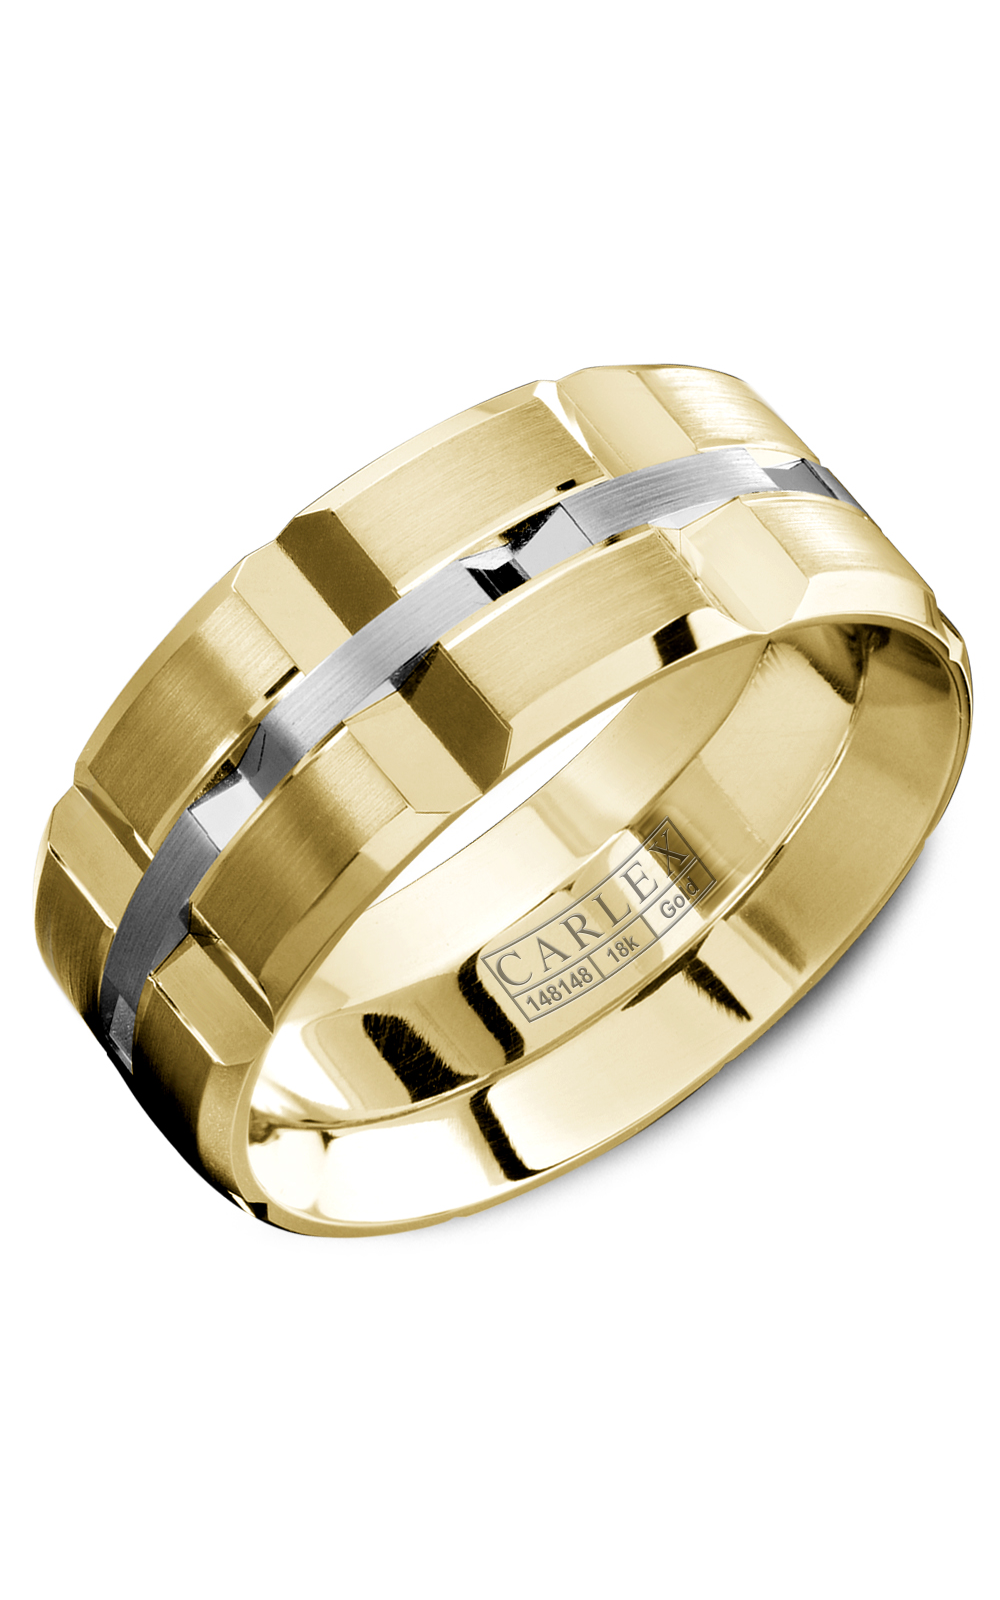 Carlex G1 Men's Wedding Band WB-9567WY product image